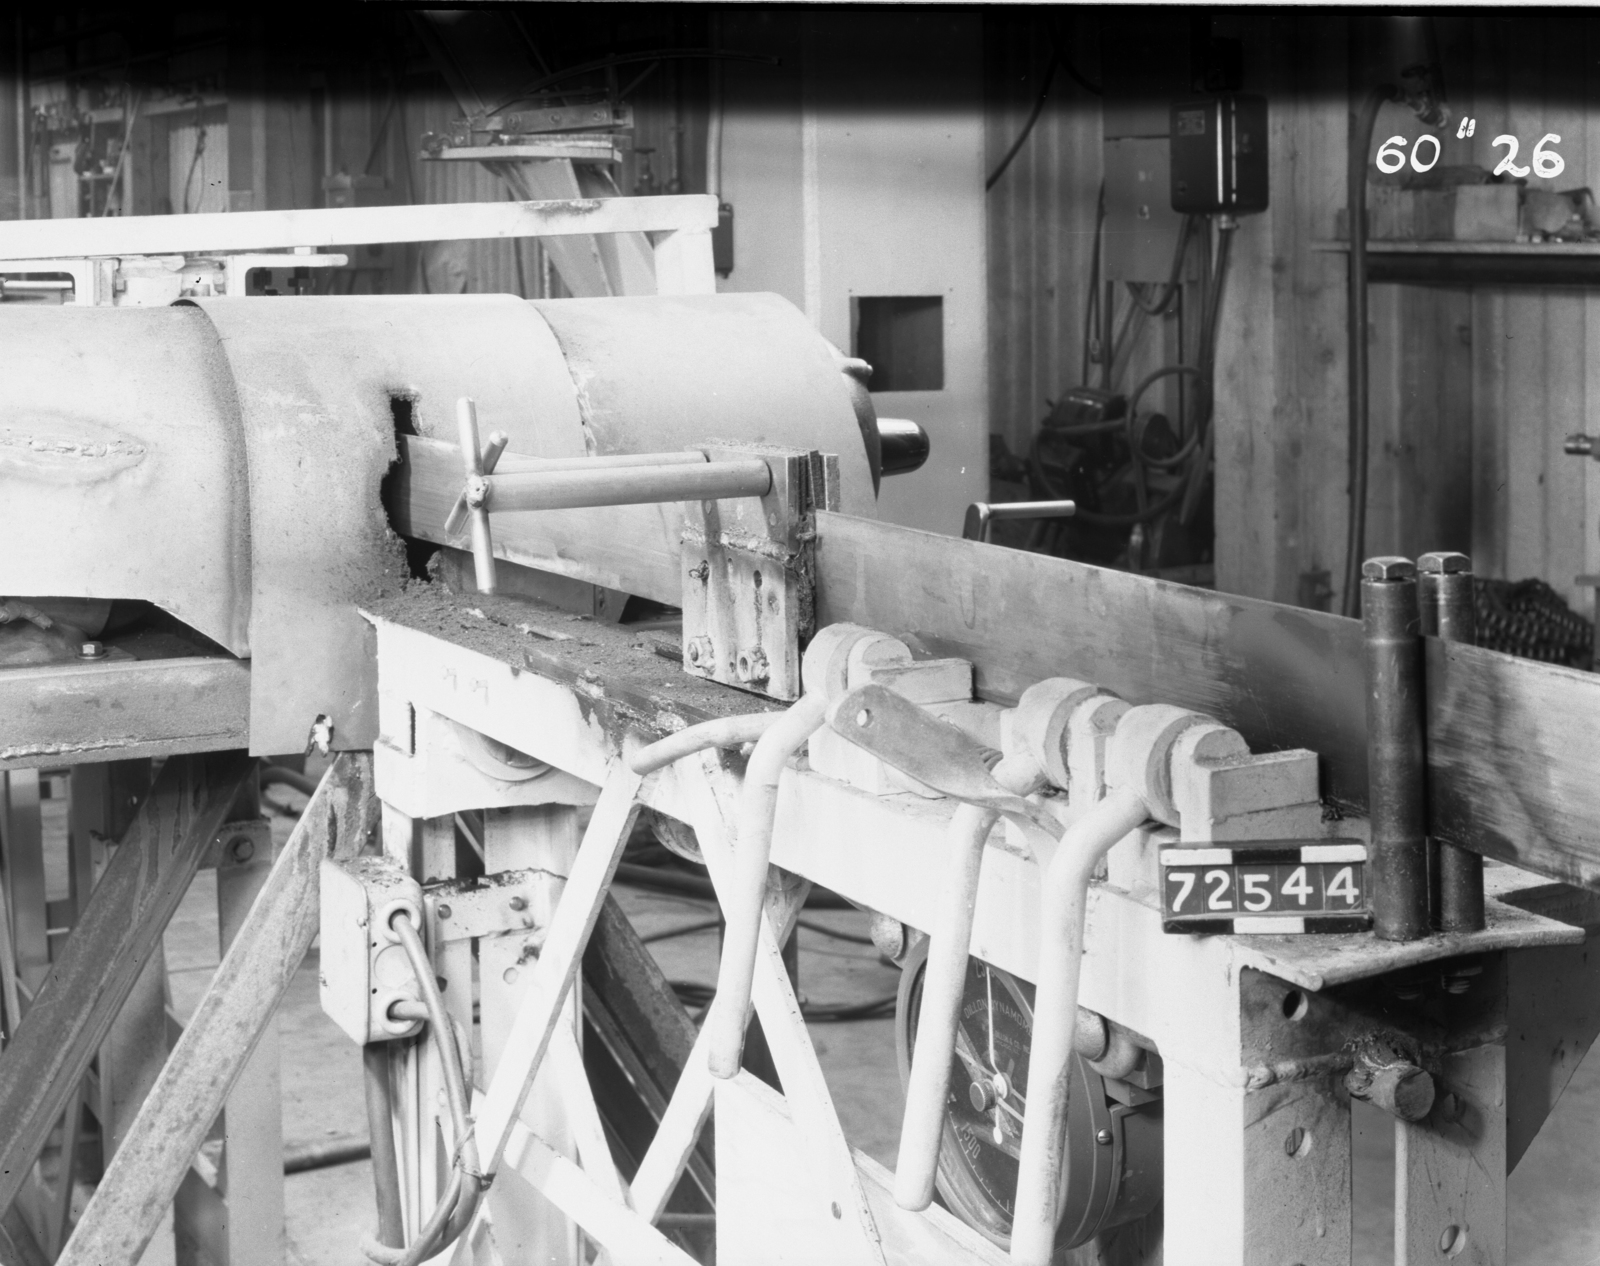 """60-inch coil winding. Copper ribbon passing through tension brake and buffer motors after annealing, 60-inch cyclotron. Photo taken 7/25/1944. 60""""-26; ZN-707 Principal Investigator/Project: Crocker Lab/60-inch"""